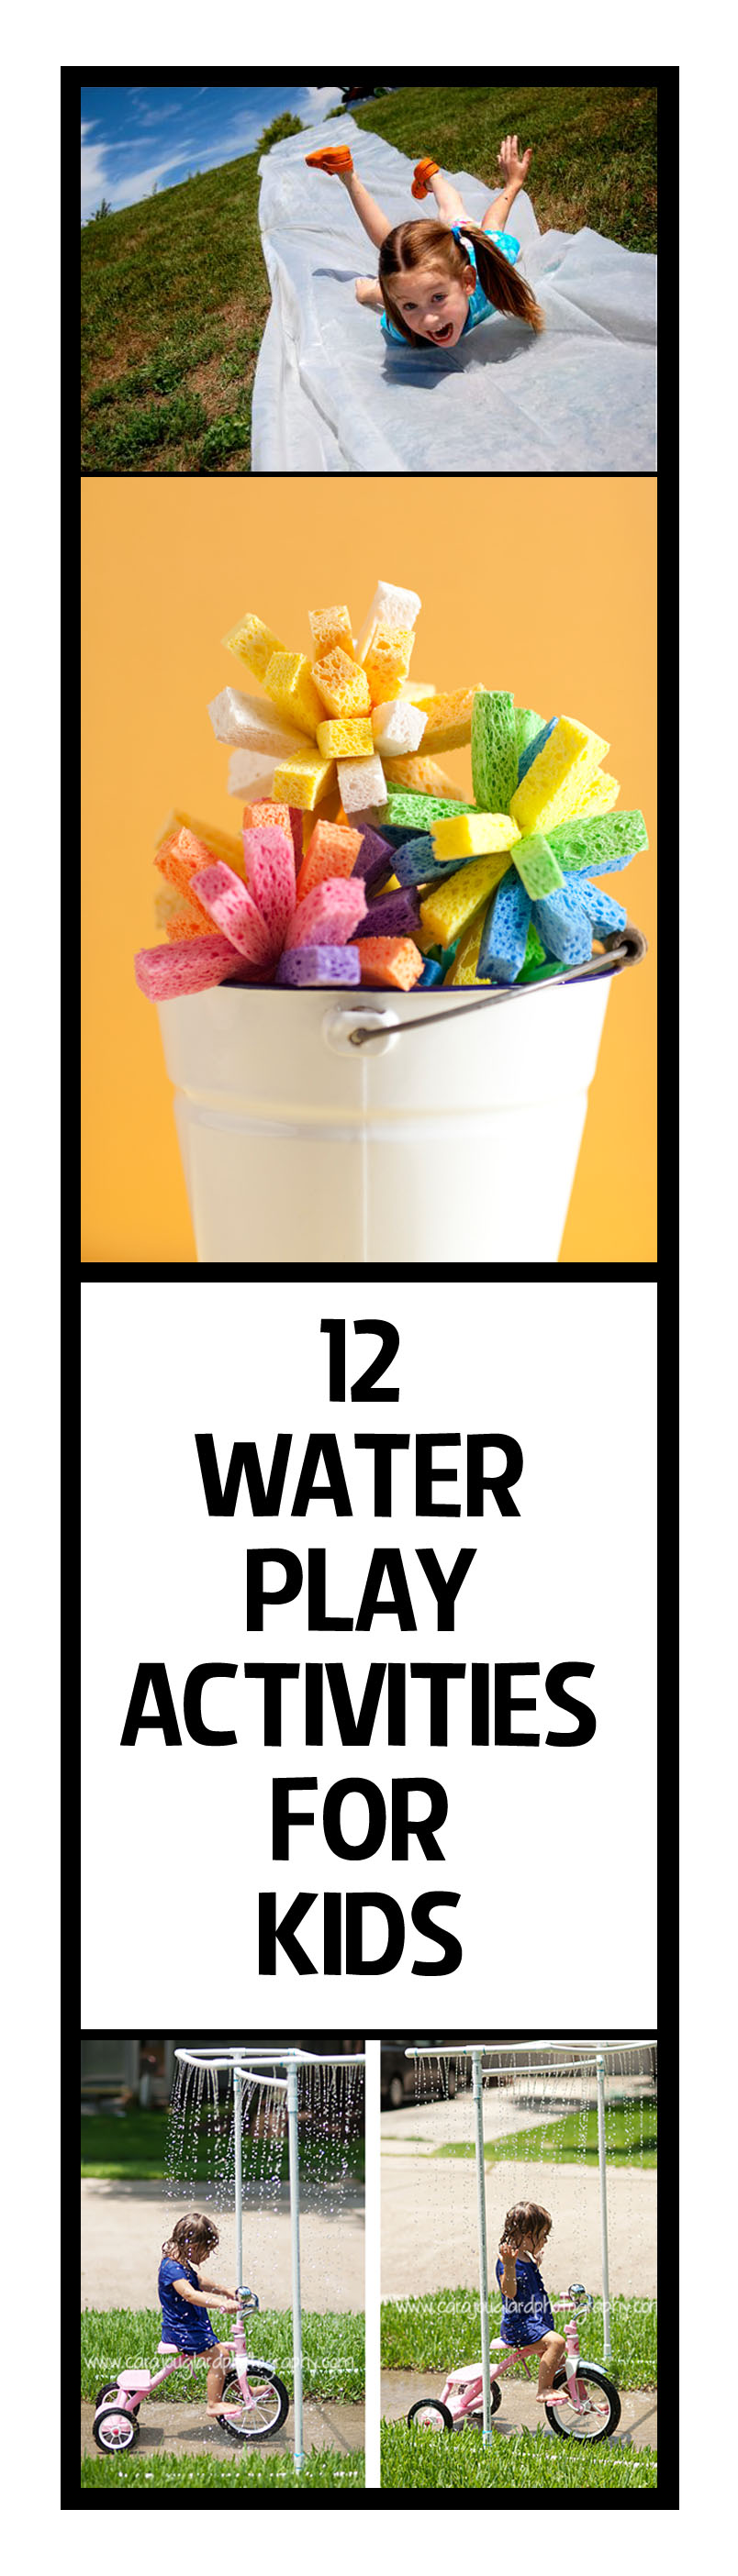 12 Water Play Activities for Kids